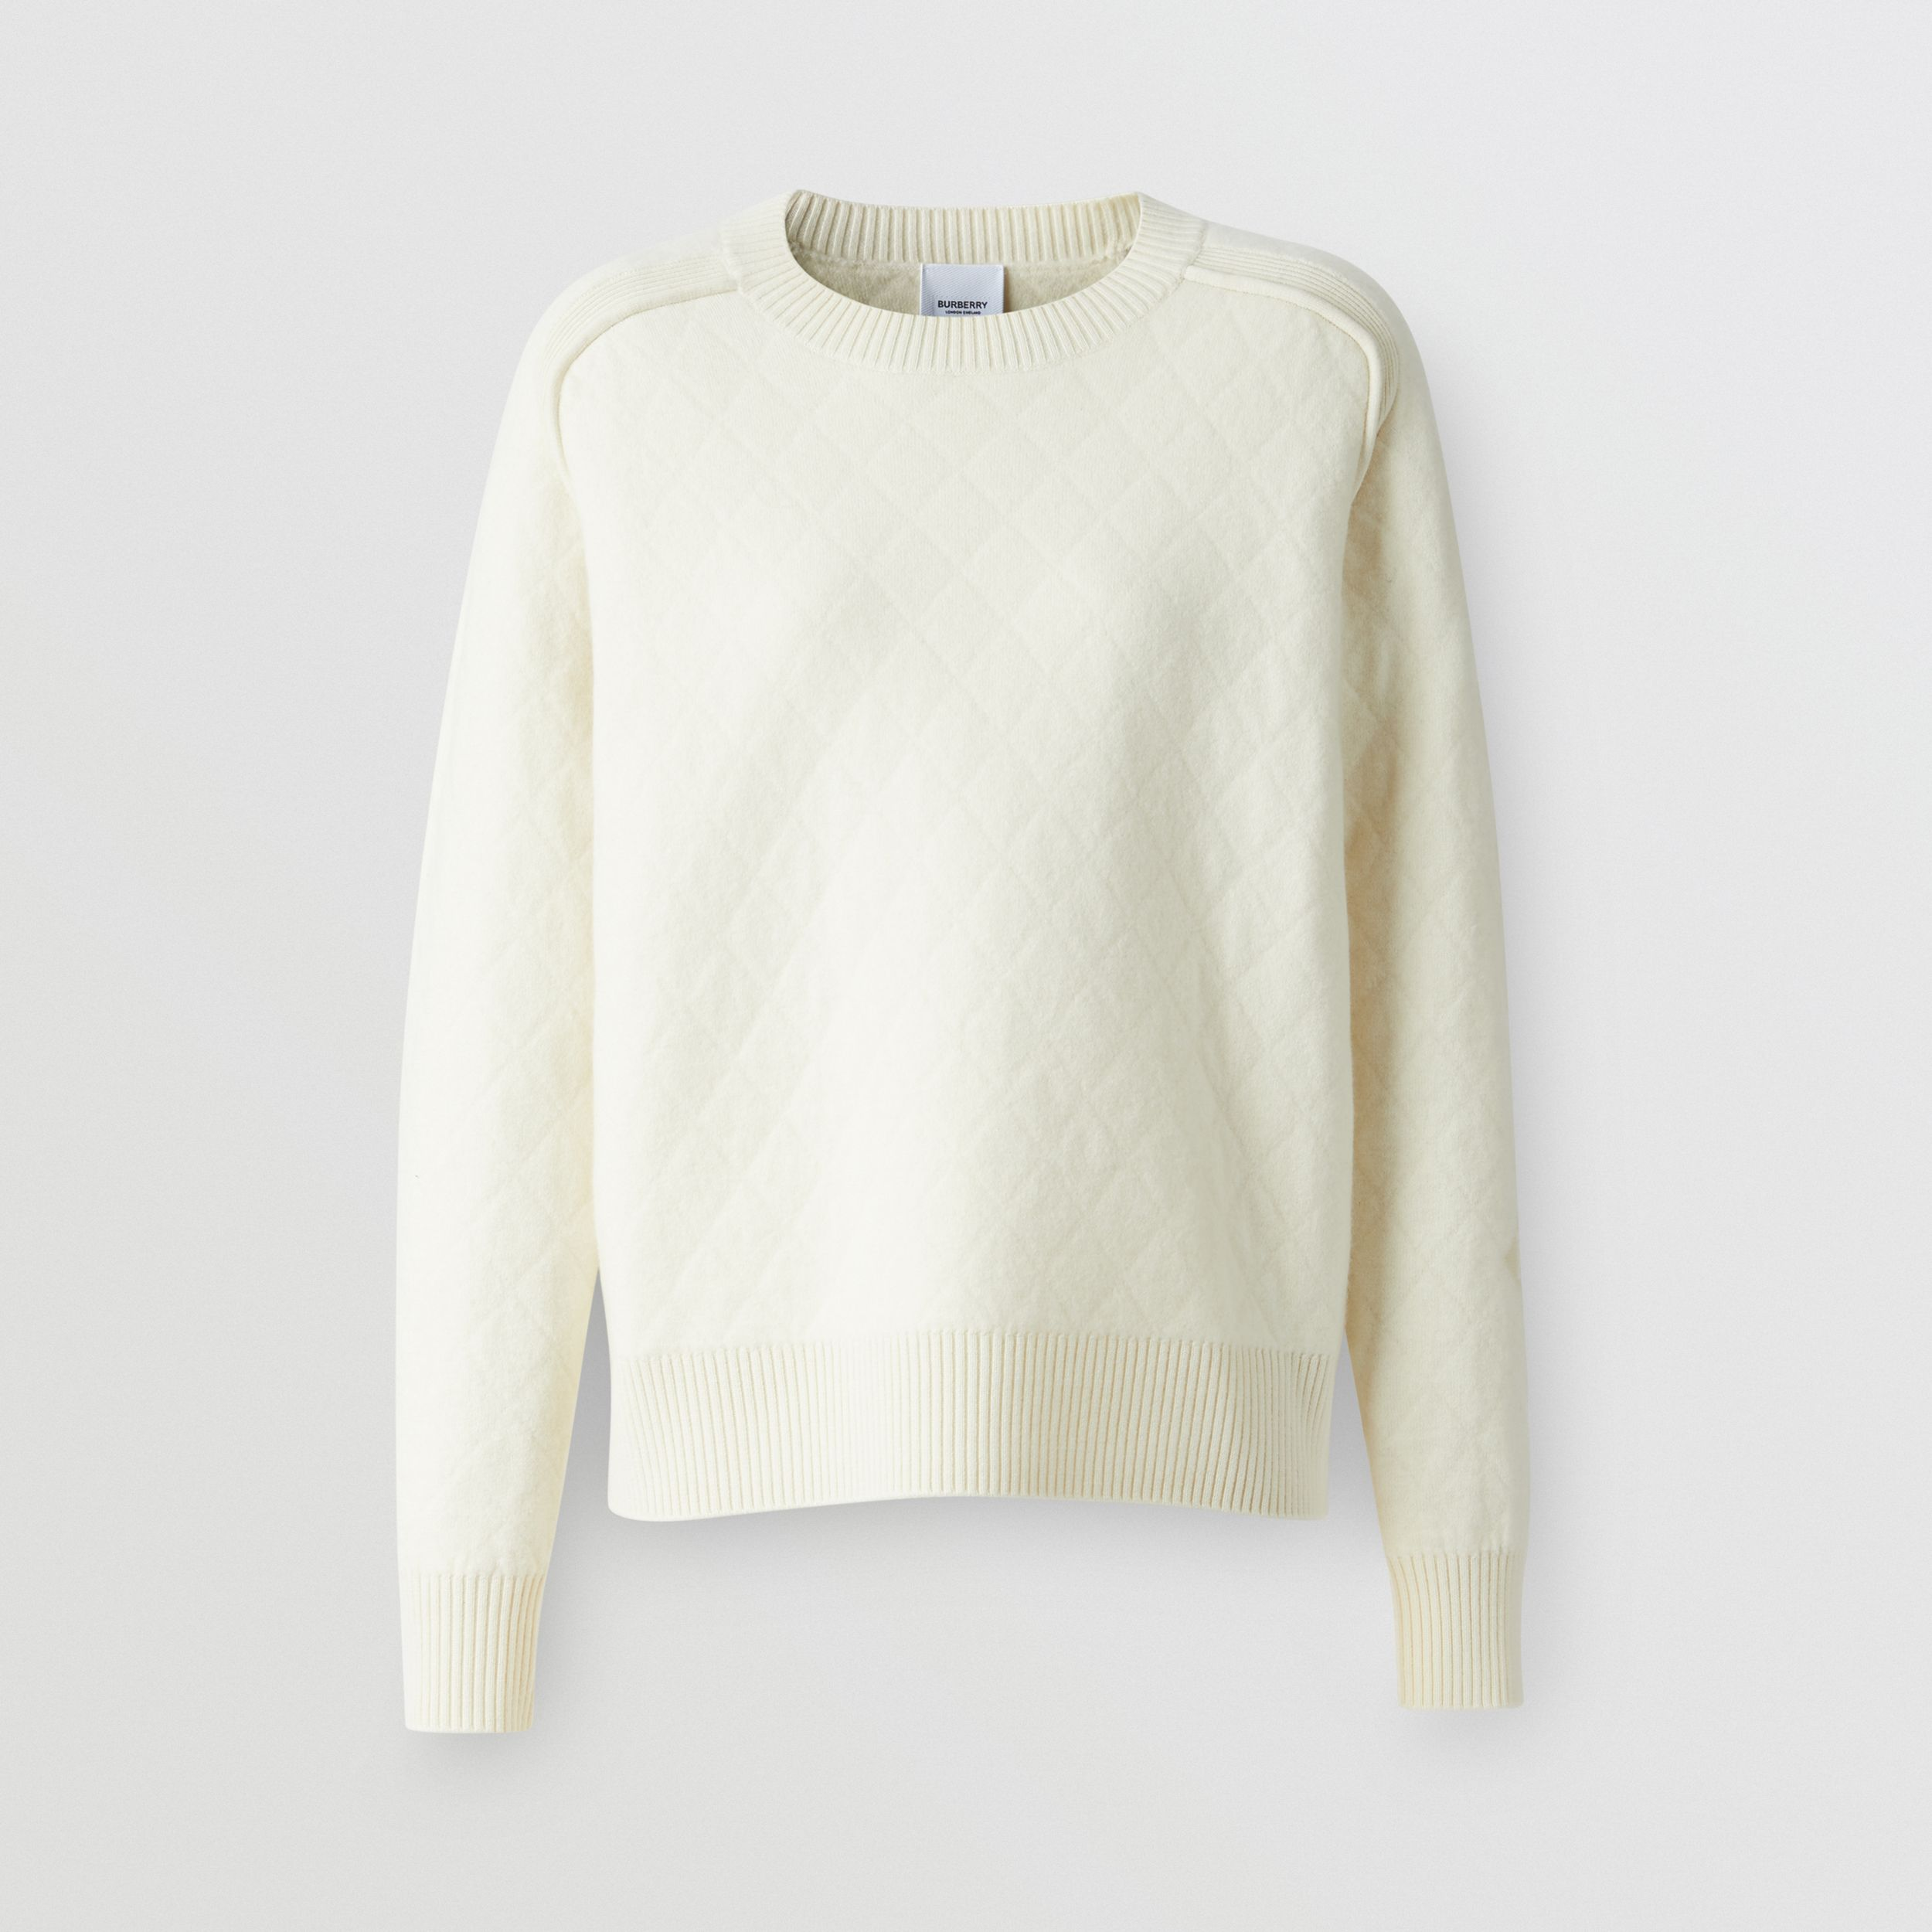 Diamond Knit Wool Sweater in Cream - Women | Burberry Hong Kong S.A.R. - 4